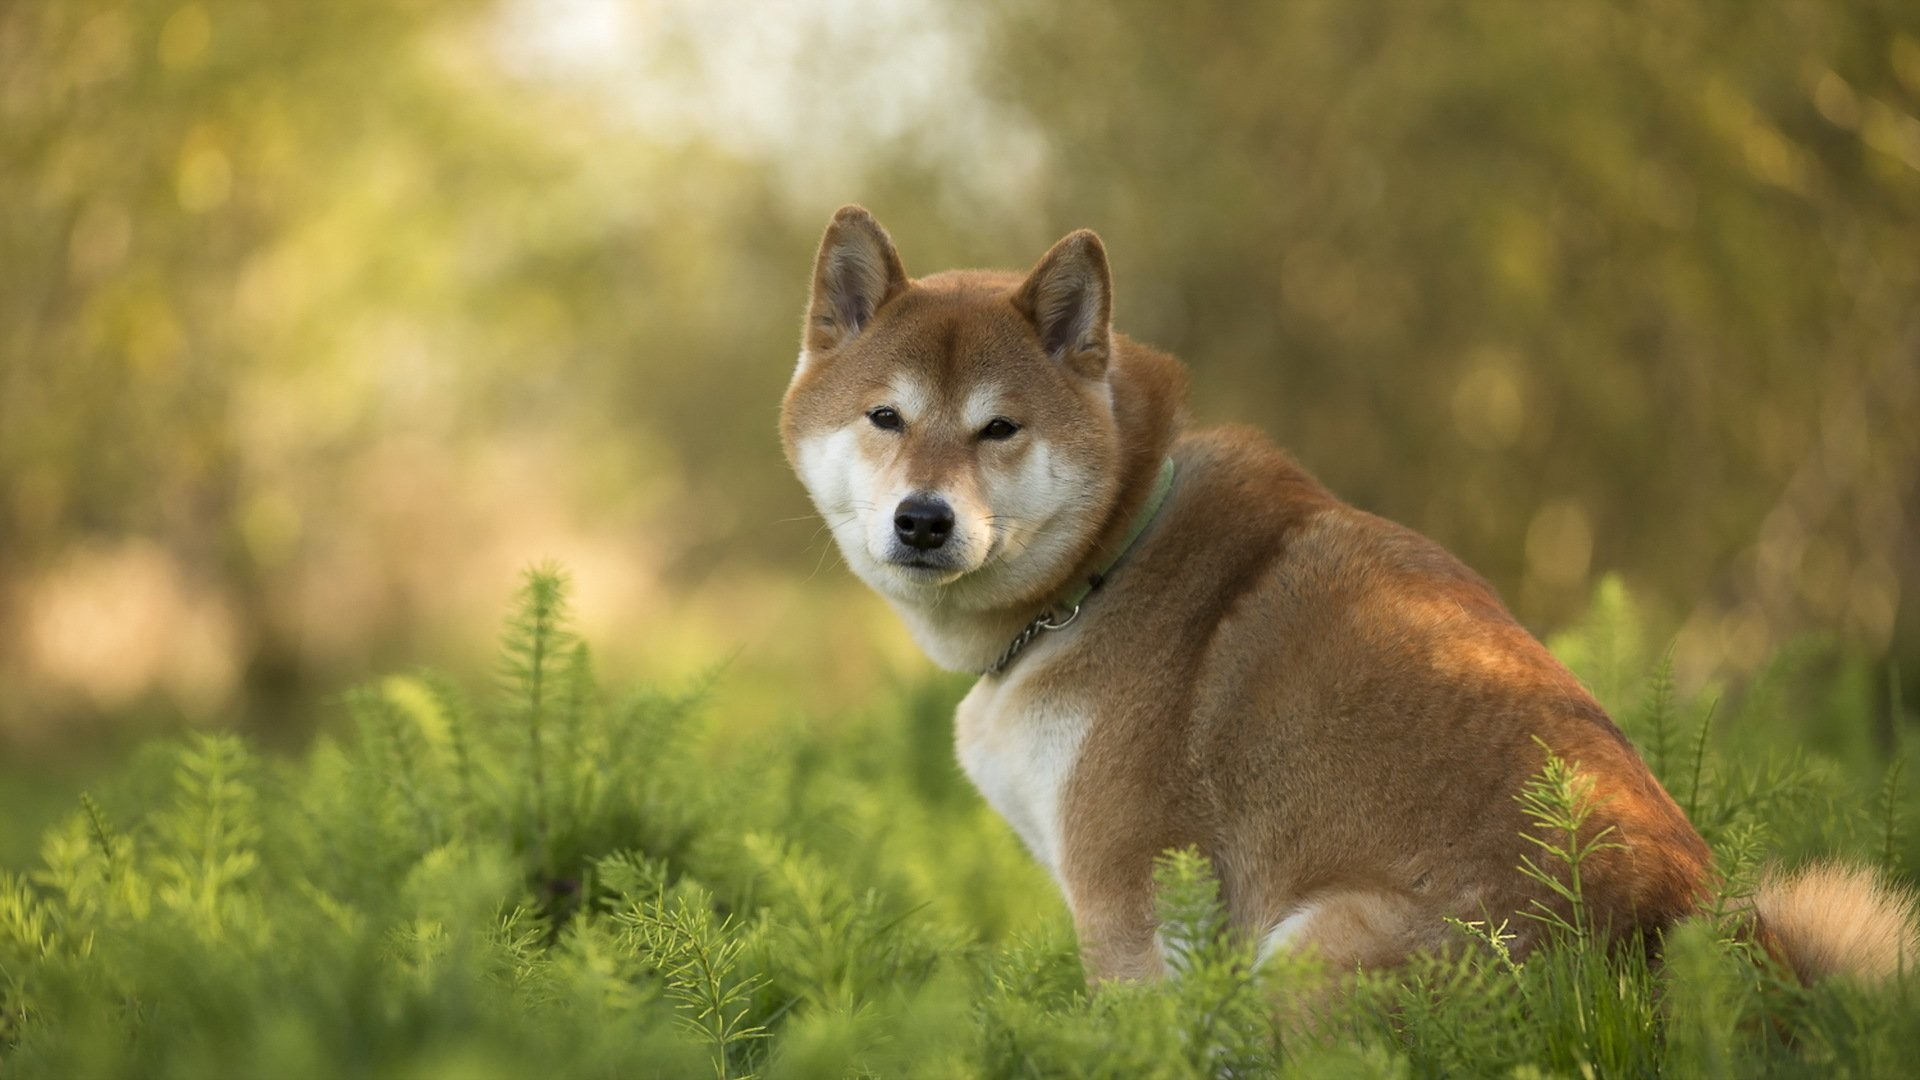 Doge Wallpaper HD 77 Images